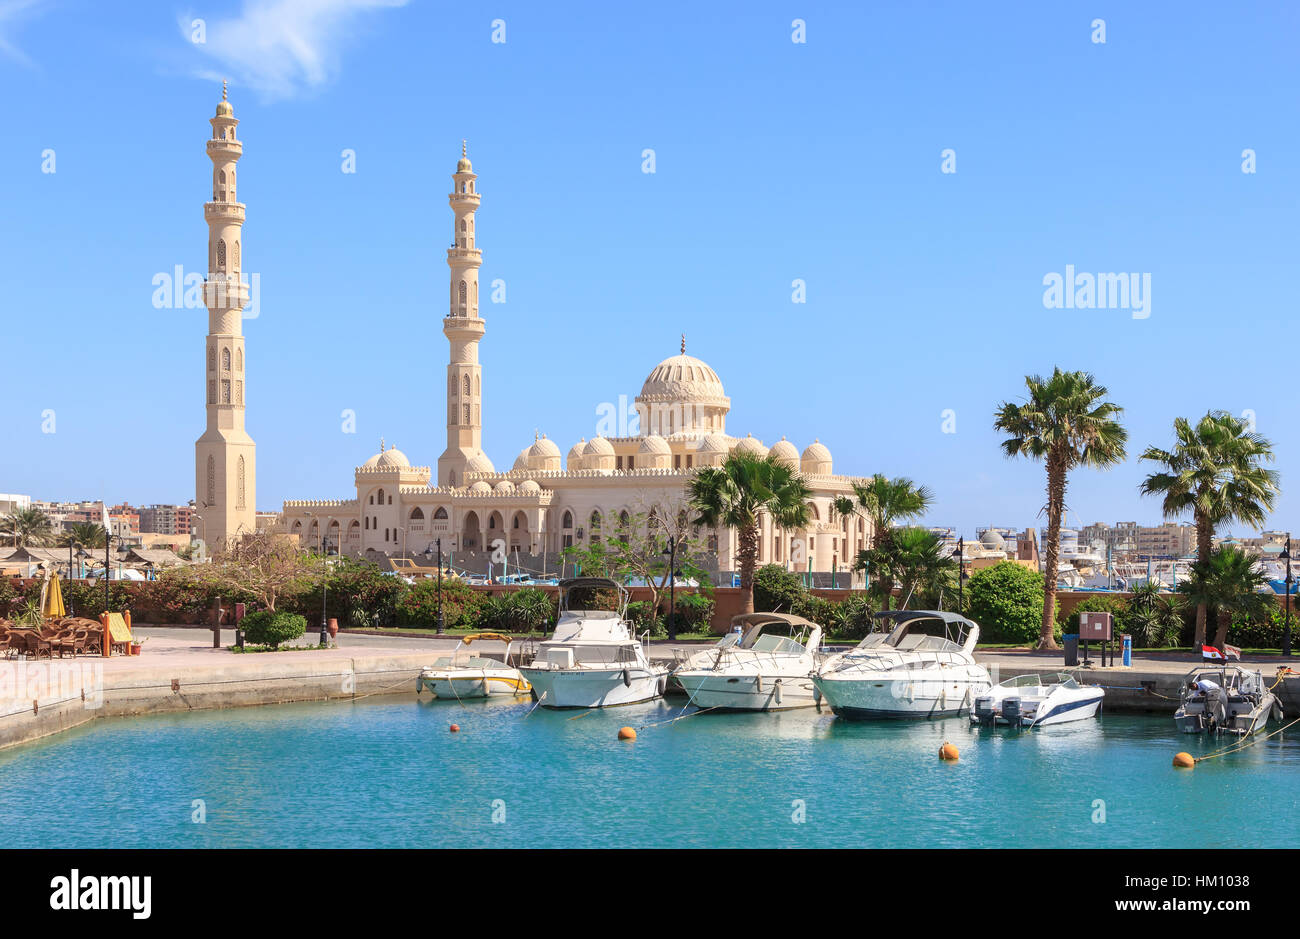 HURGHADA, EGYPT, APRIL 23, 2014: Mosque El Mina Masjid in Hurghada in sunny day, view from the sea. - Stock Image